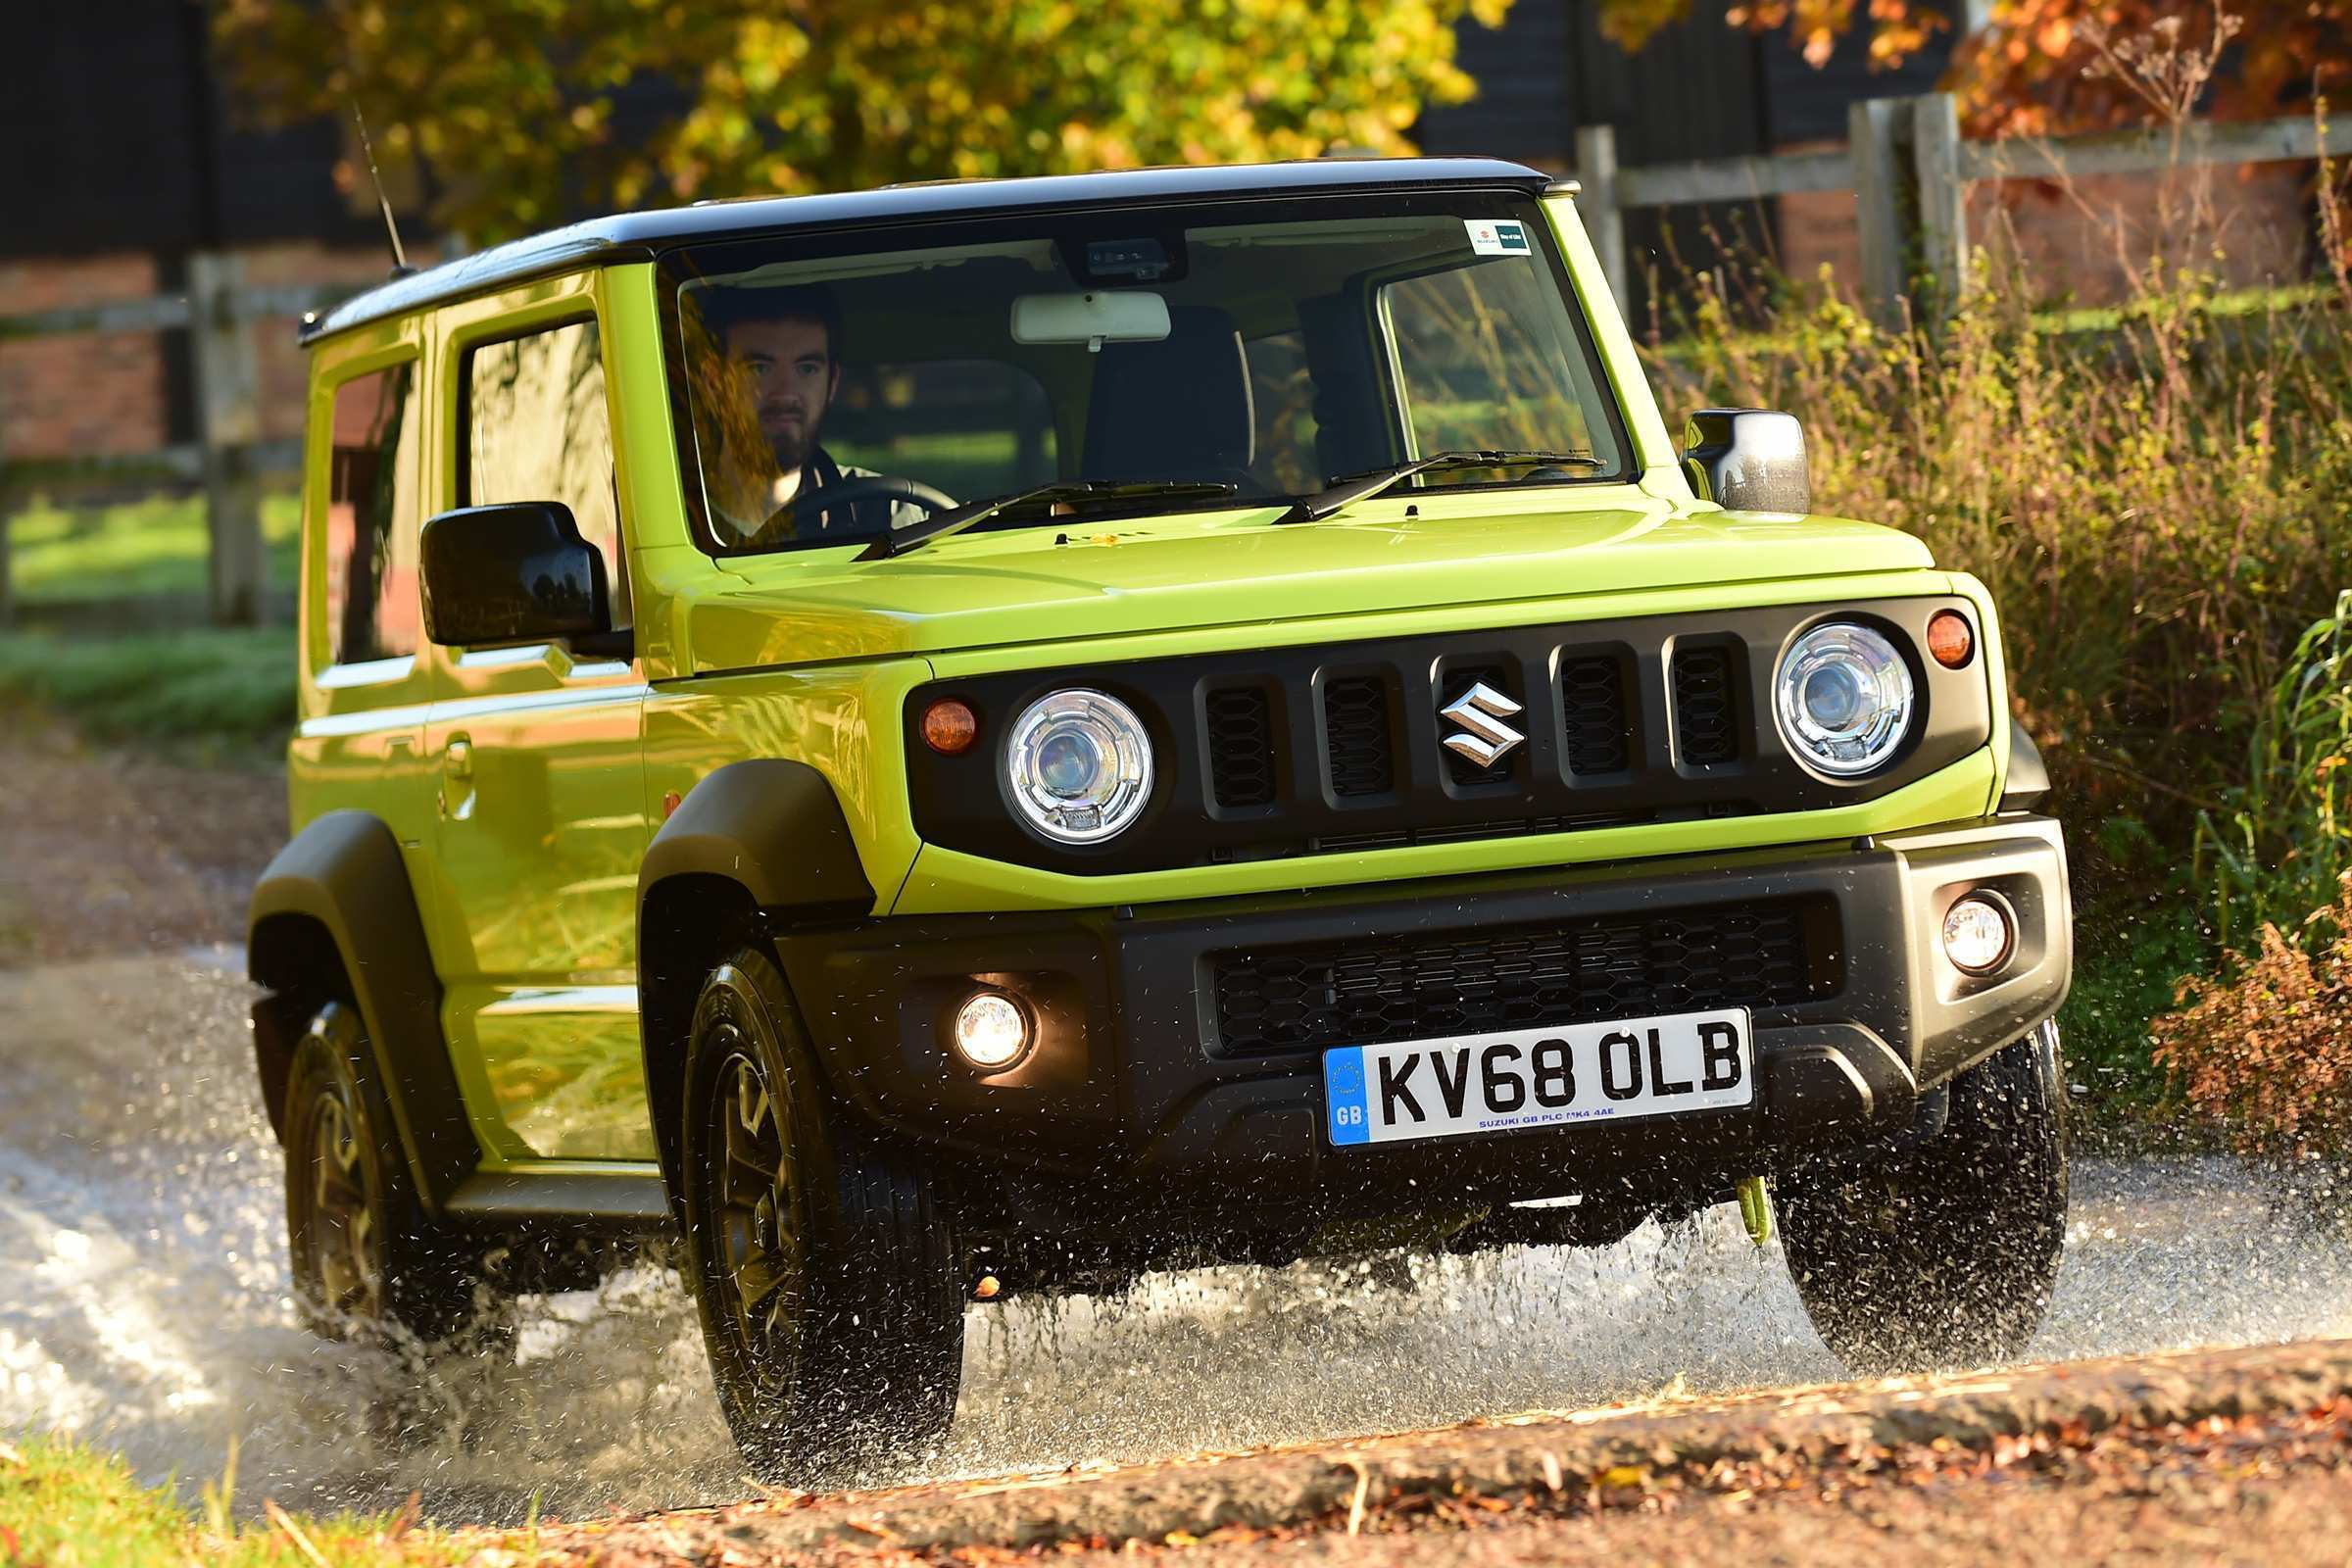 11 New Jimny 2019 Mercedes New Concept Price and Review by Jimny 2019 Mercedes New Concept